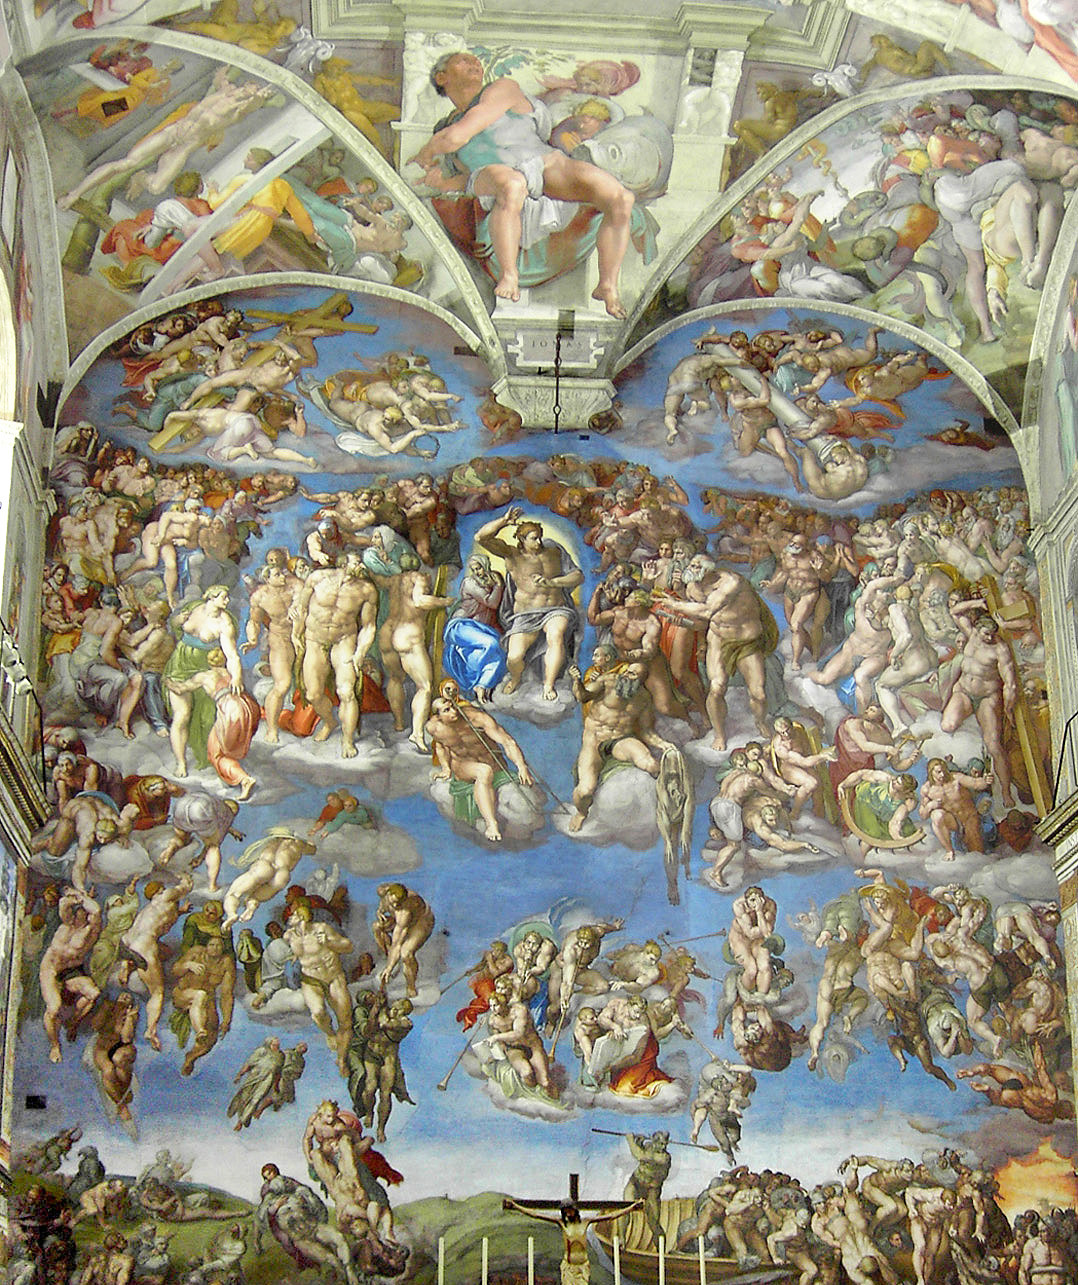 Cuadros Religiosos Famosos Inside Vatican City And The Renaissance Architecture Of